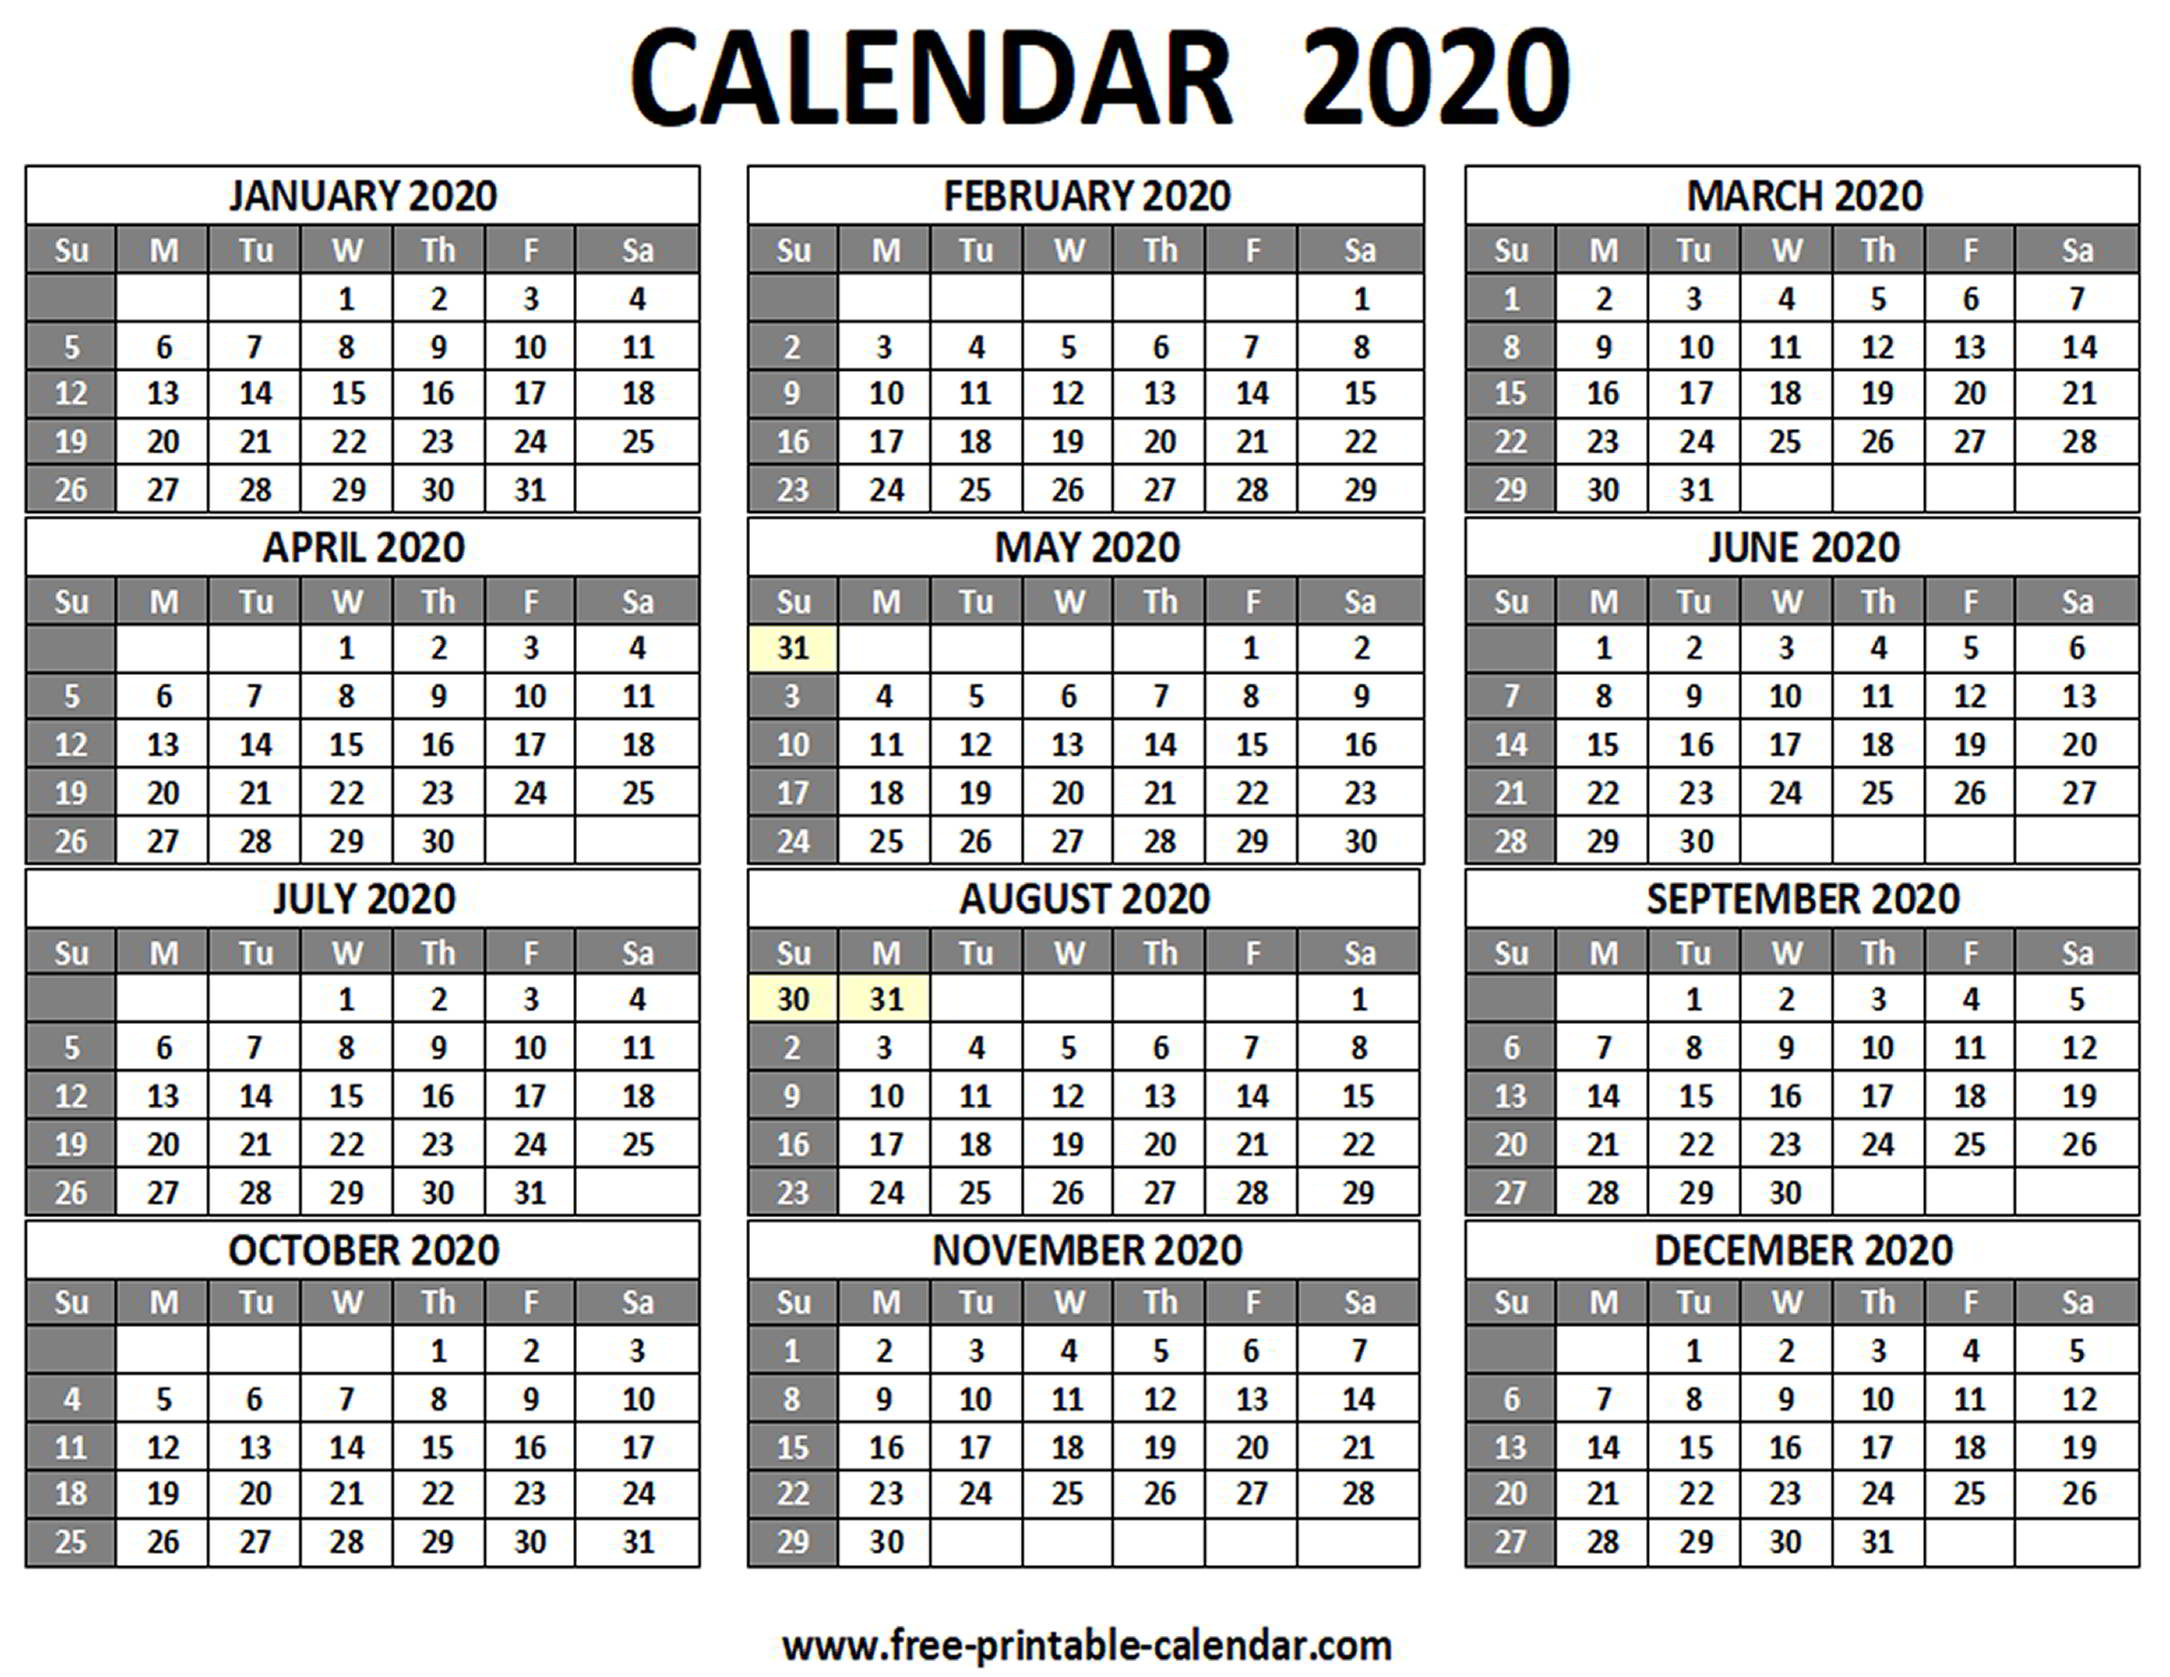 Printable 2020 Calendar - Free-Printable-Calendar with Printable 2020 Calendar I Can Edit